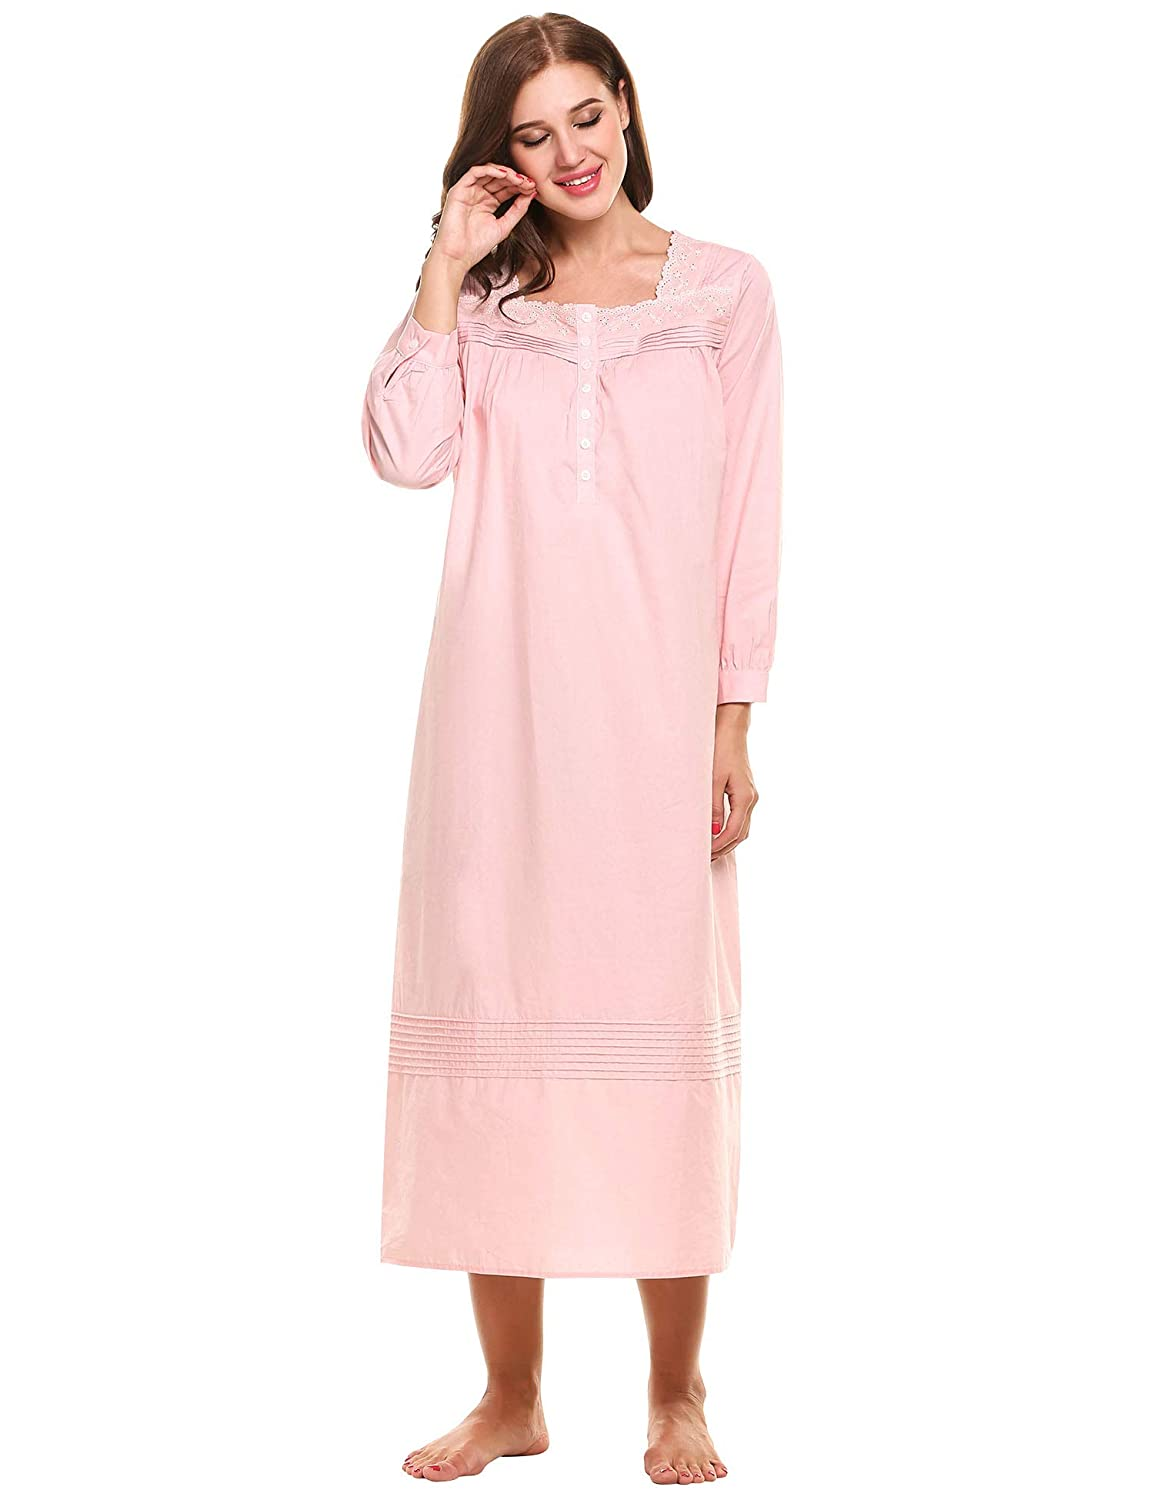 Hotouch Women s Comfort Cotton Nightshirt Sleeveless Sleepwear Nightgowns S- XXL at Amazon Women s Clothing store  df0d86e6d